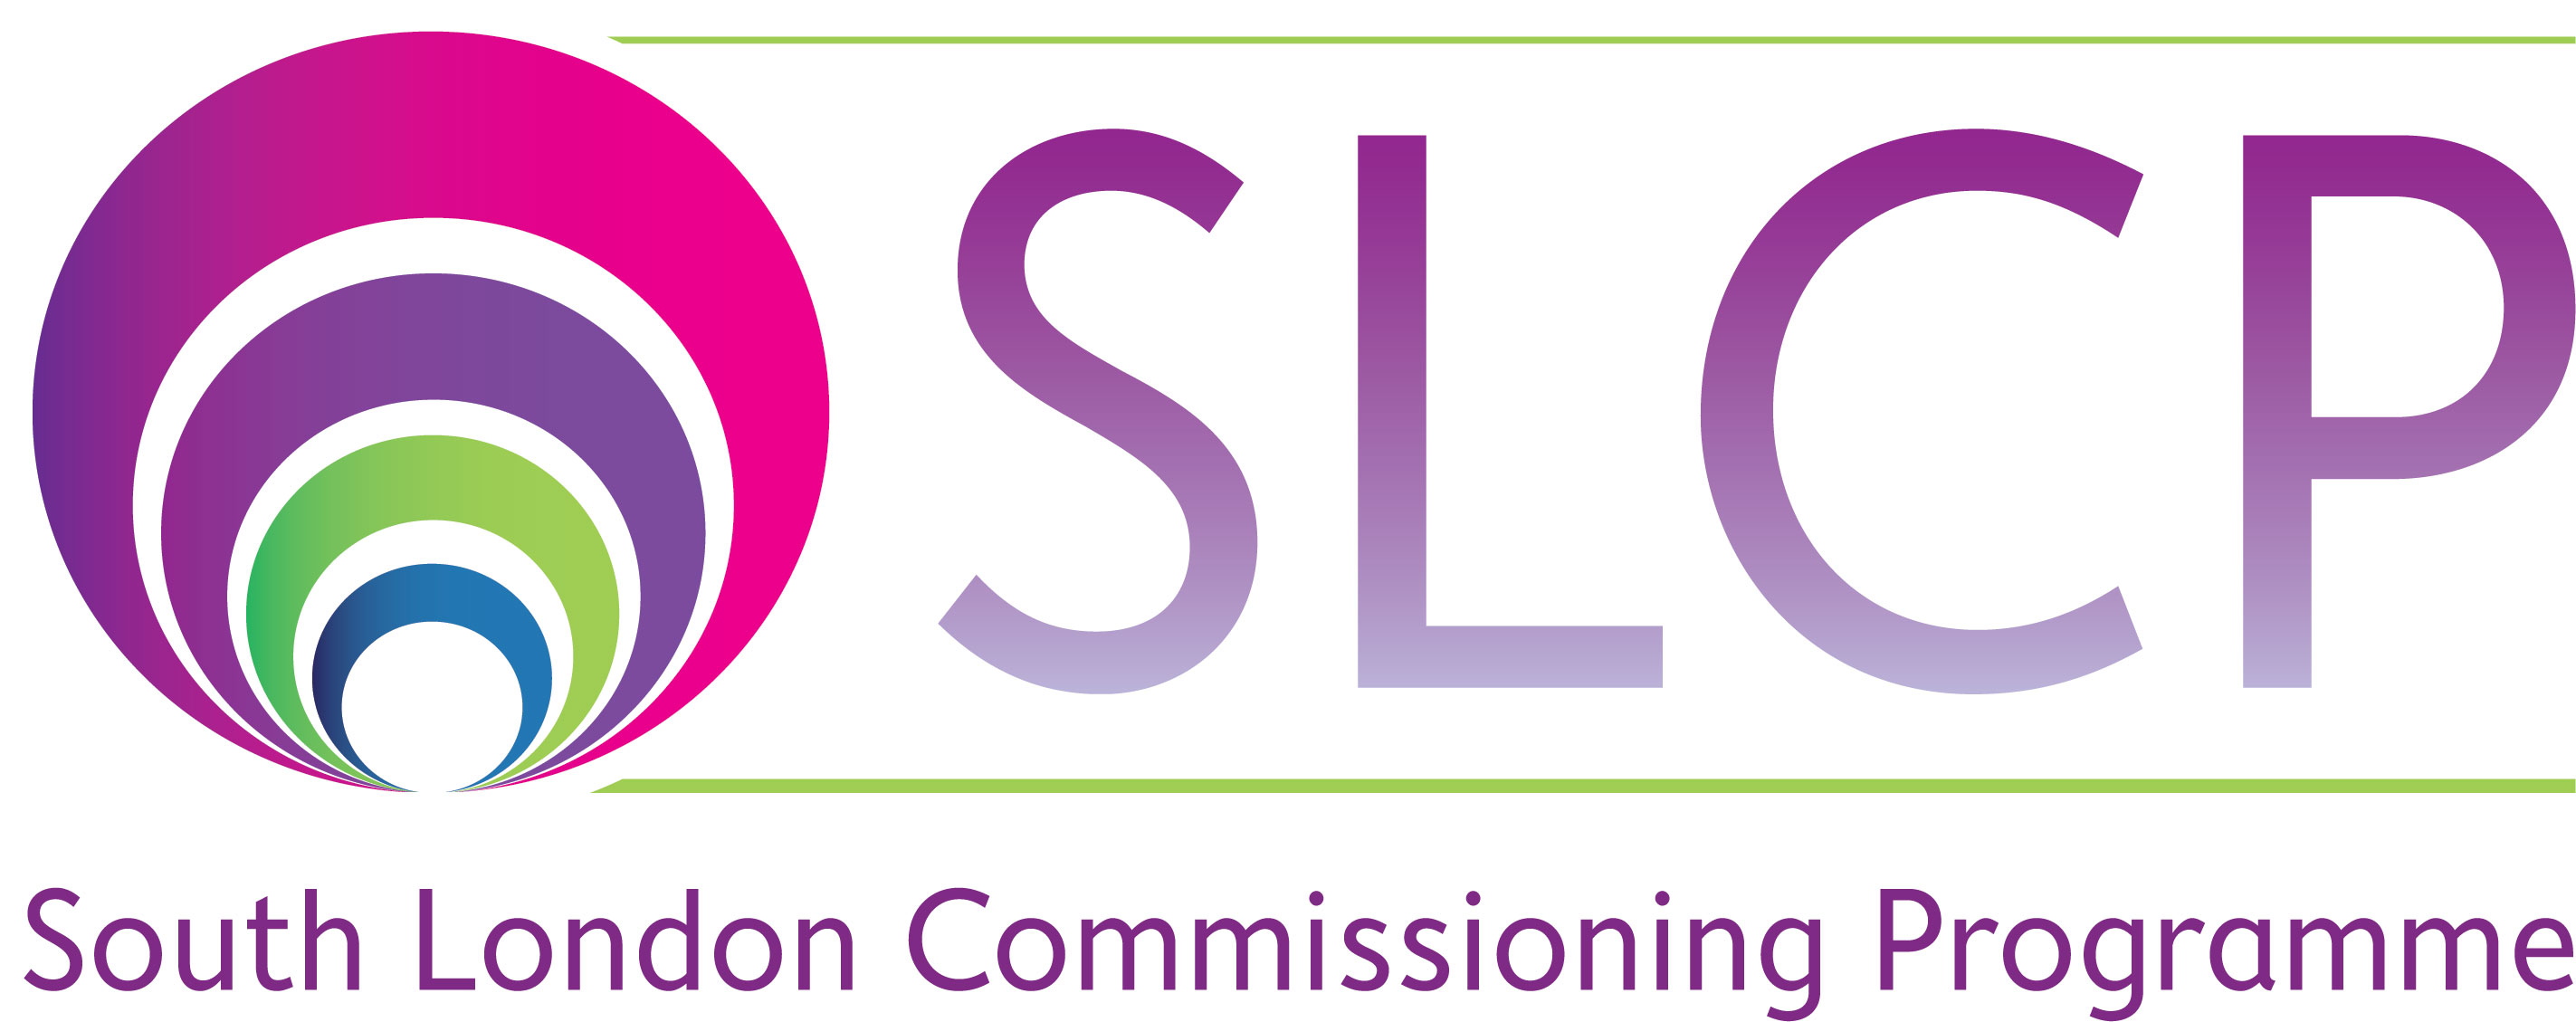 South London Commissioning Partnership